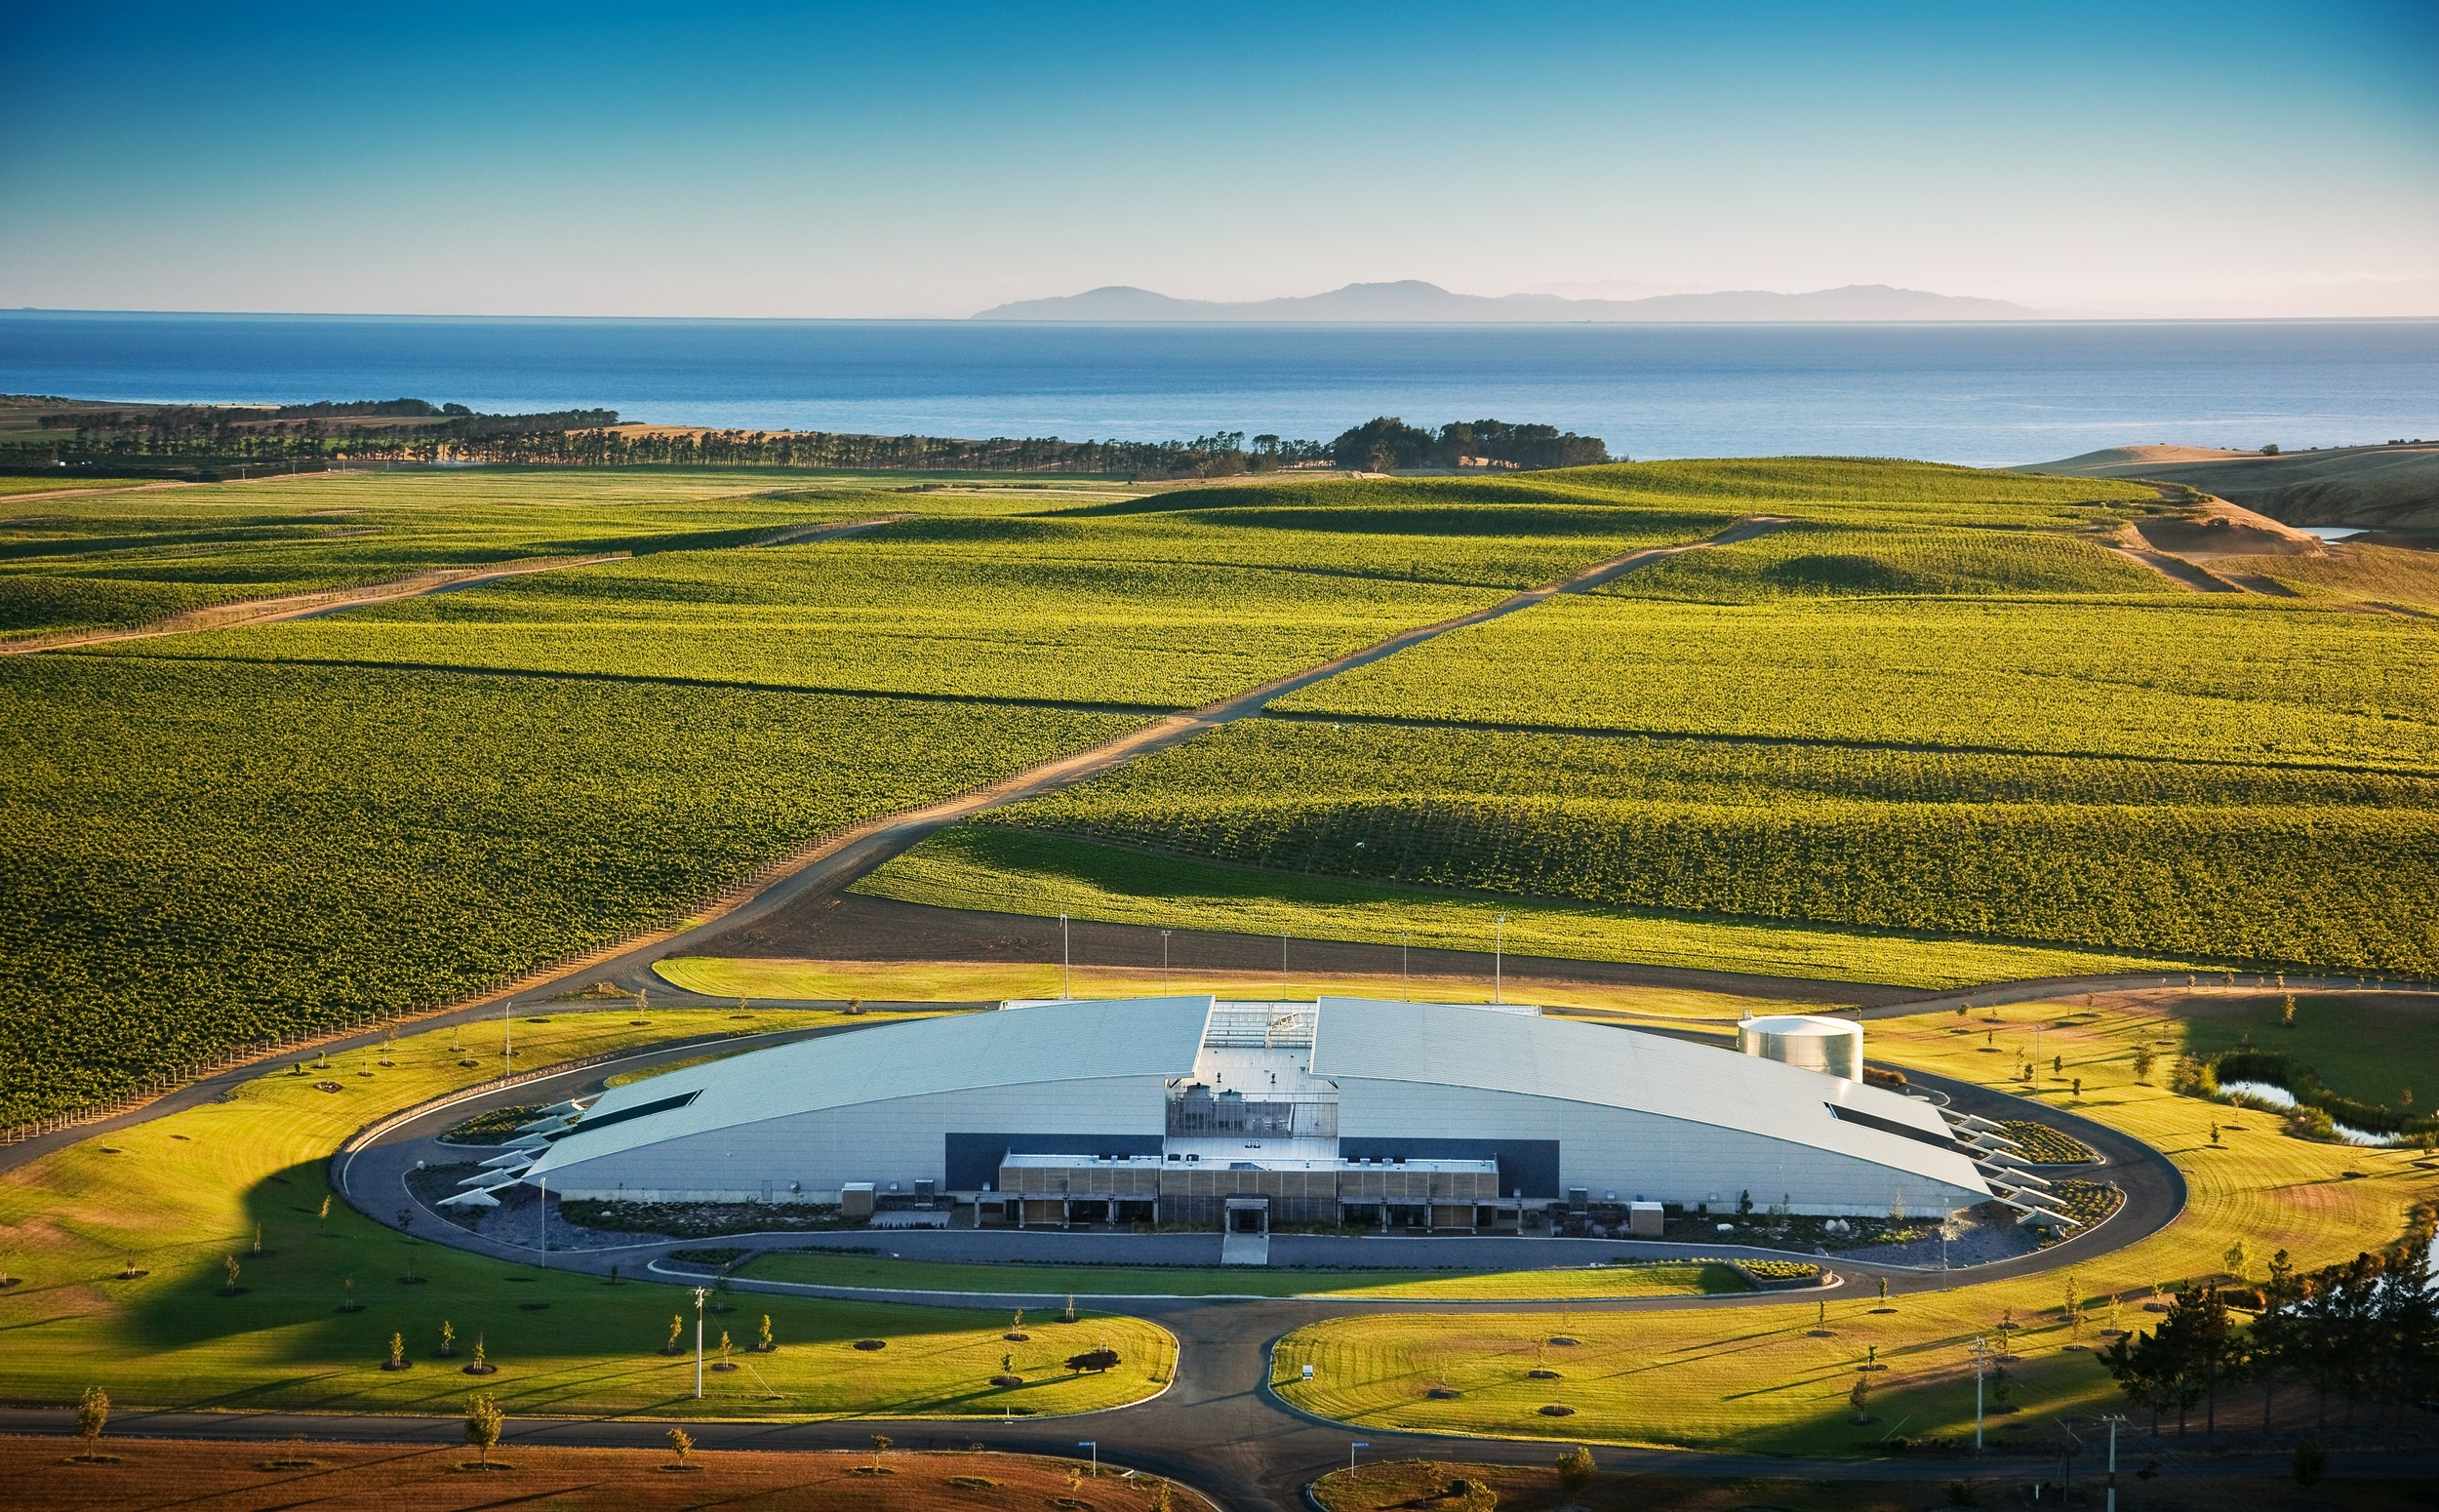 Yealands_Winery_within_the_vines-0041397.jpg